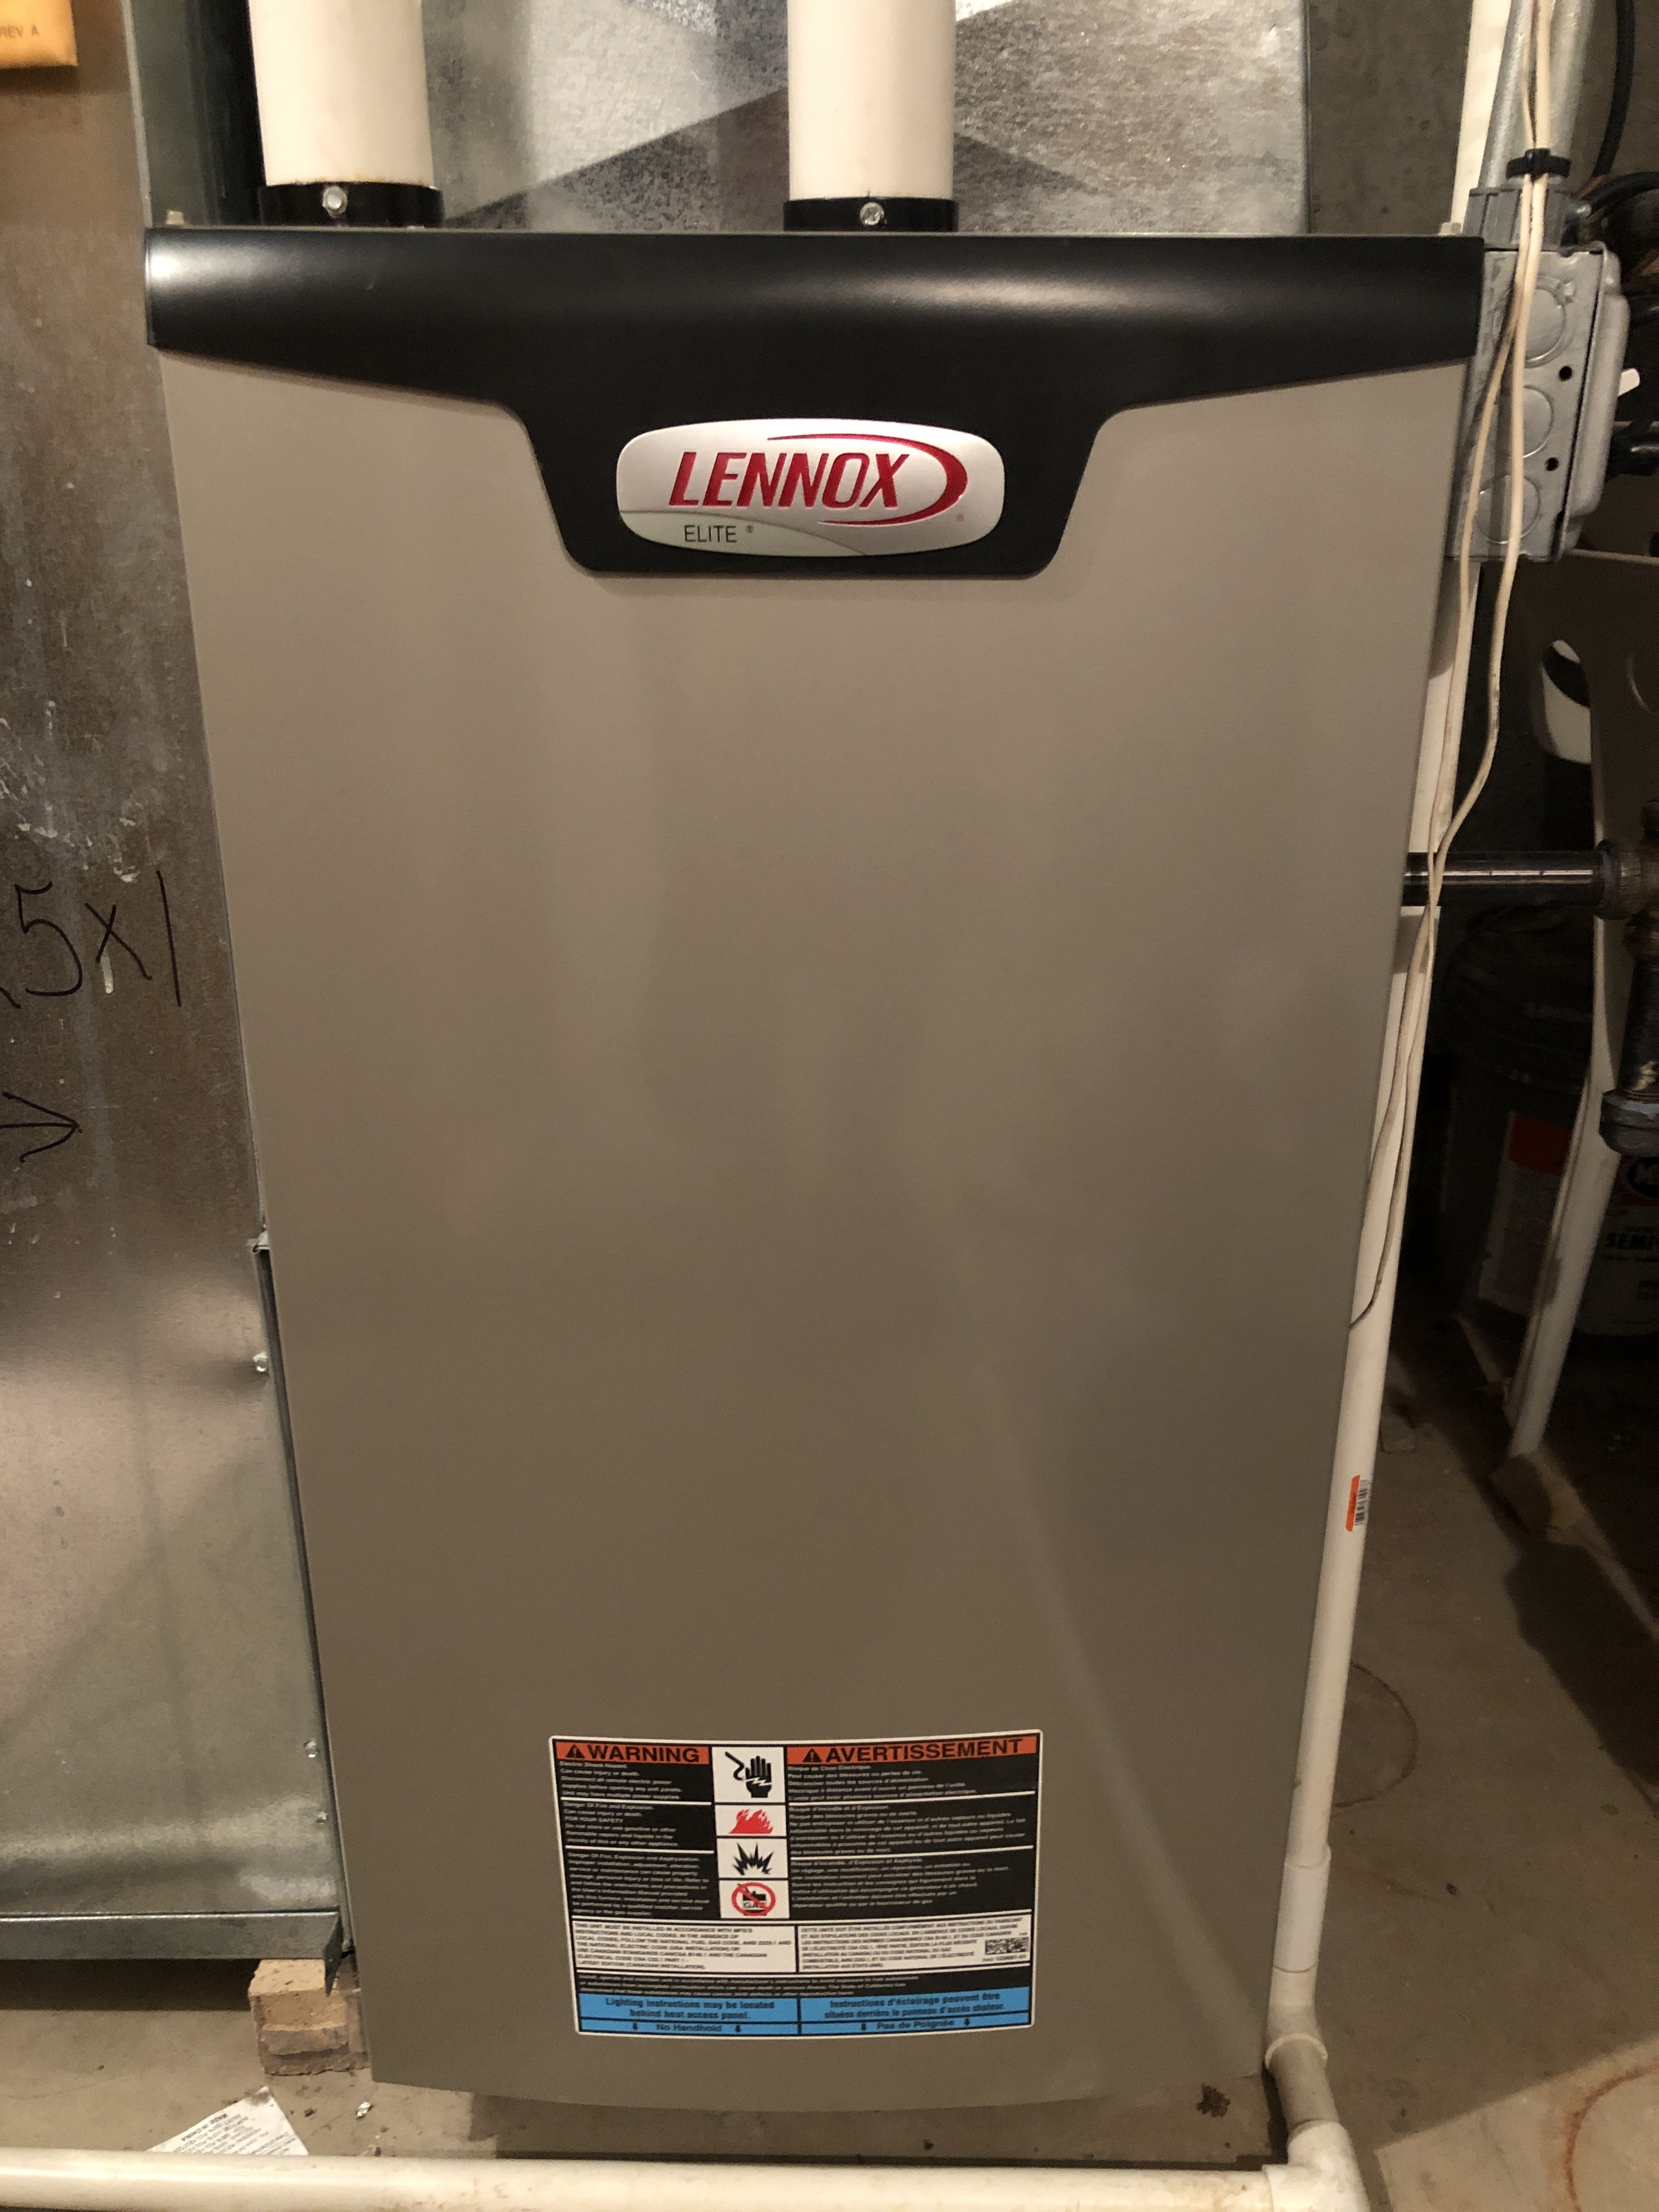 Furnace maintenance on a Lennox high efficiency furnace.